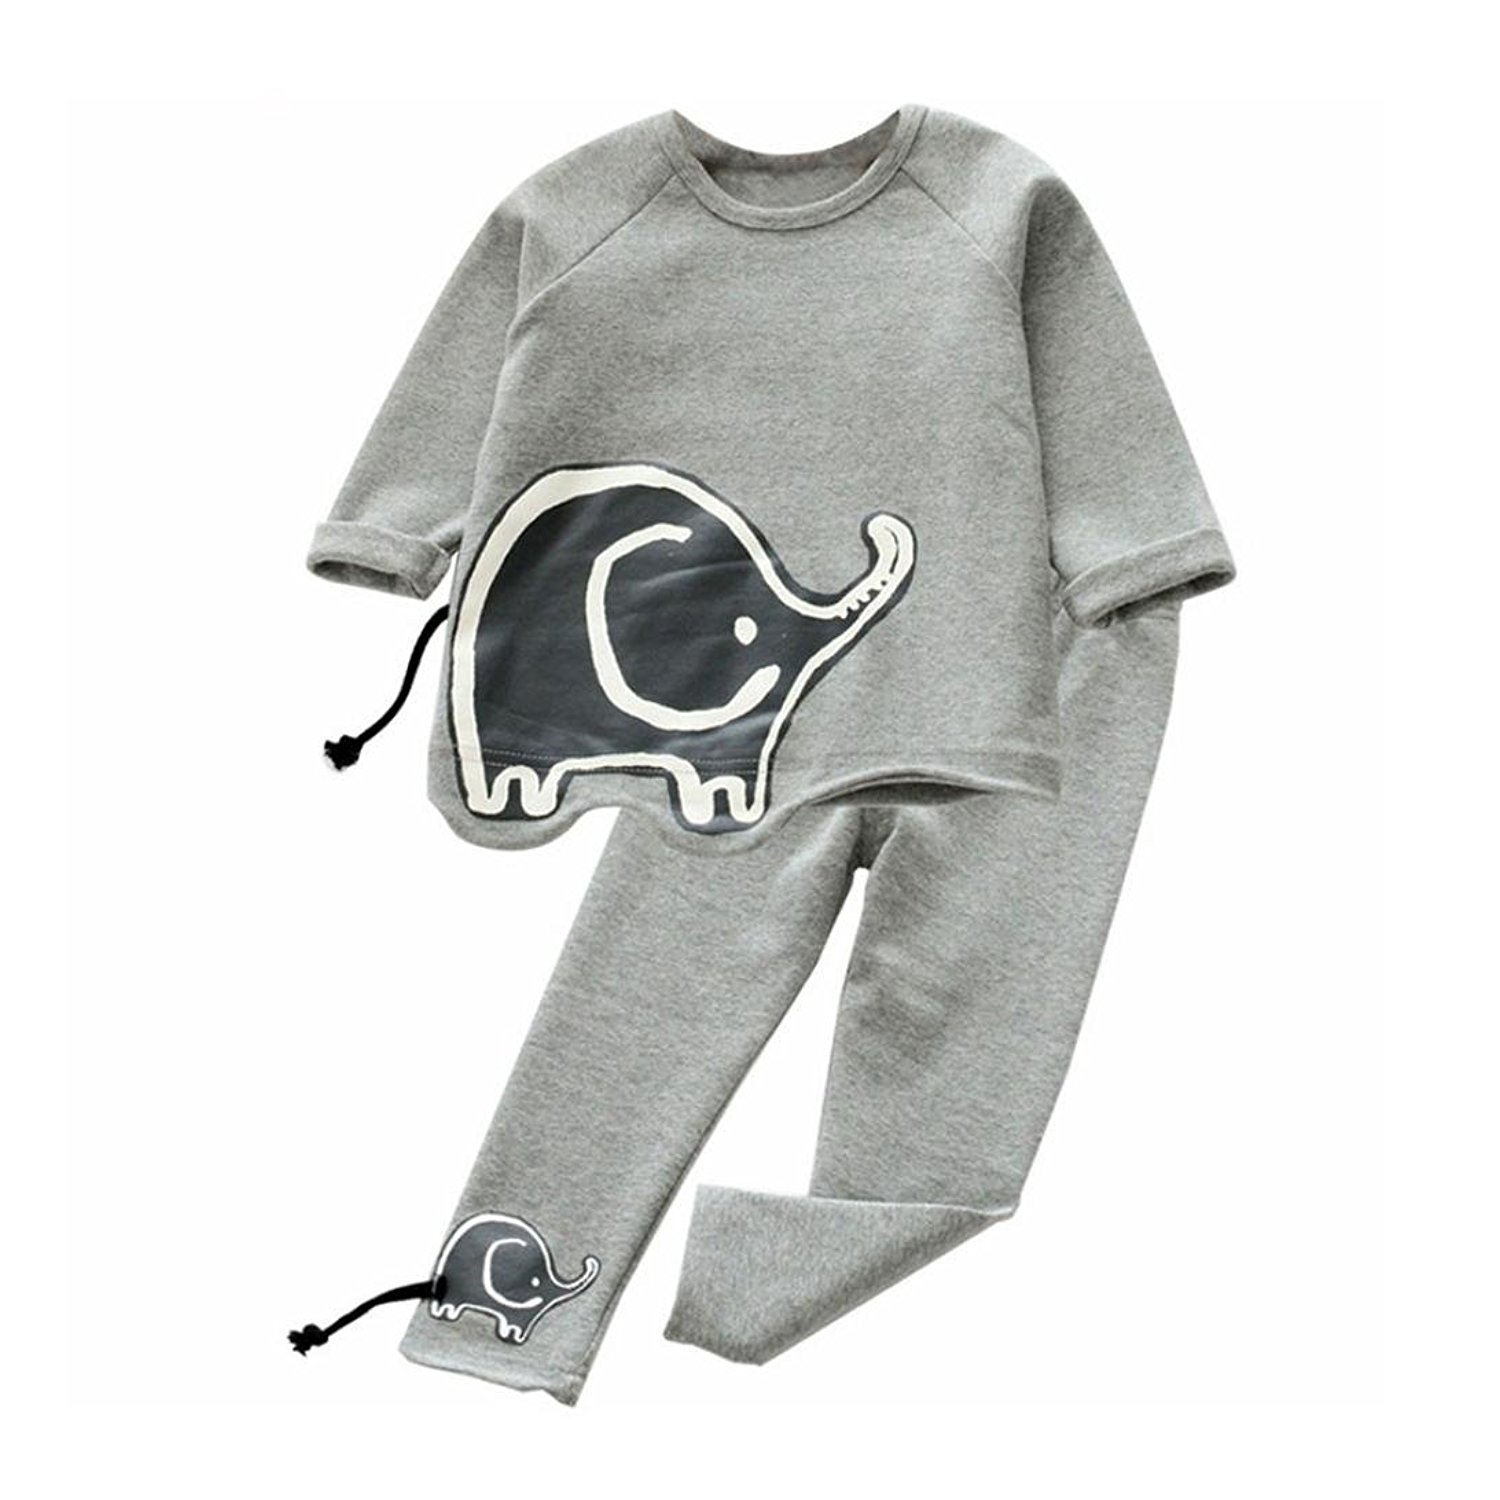 ba753e954898 Get Quotations · Vicbovo Clearance Sale Toddler Baby Girls Kids Outfit Cute  Elephant Print Shirt Sweatshirt+Pants Clothes